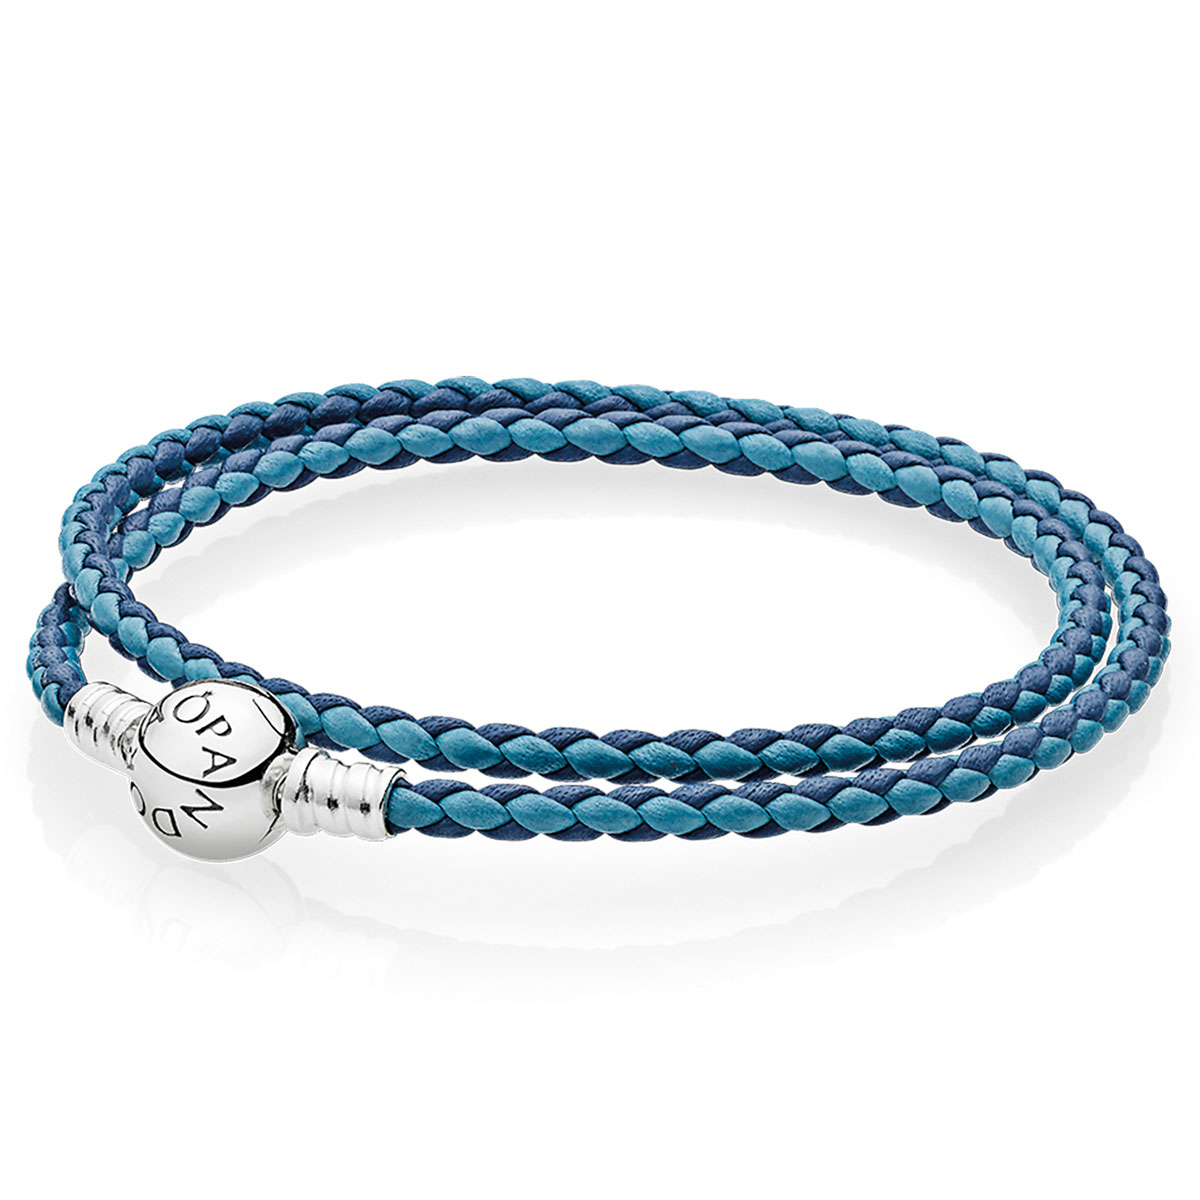 Pandora Mixed Blue Woven Doubleleather Charm Bracelet